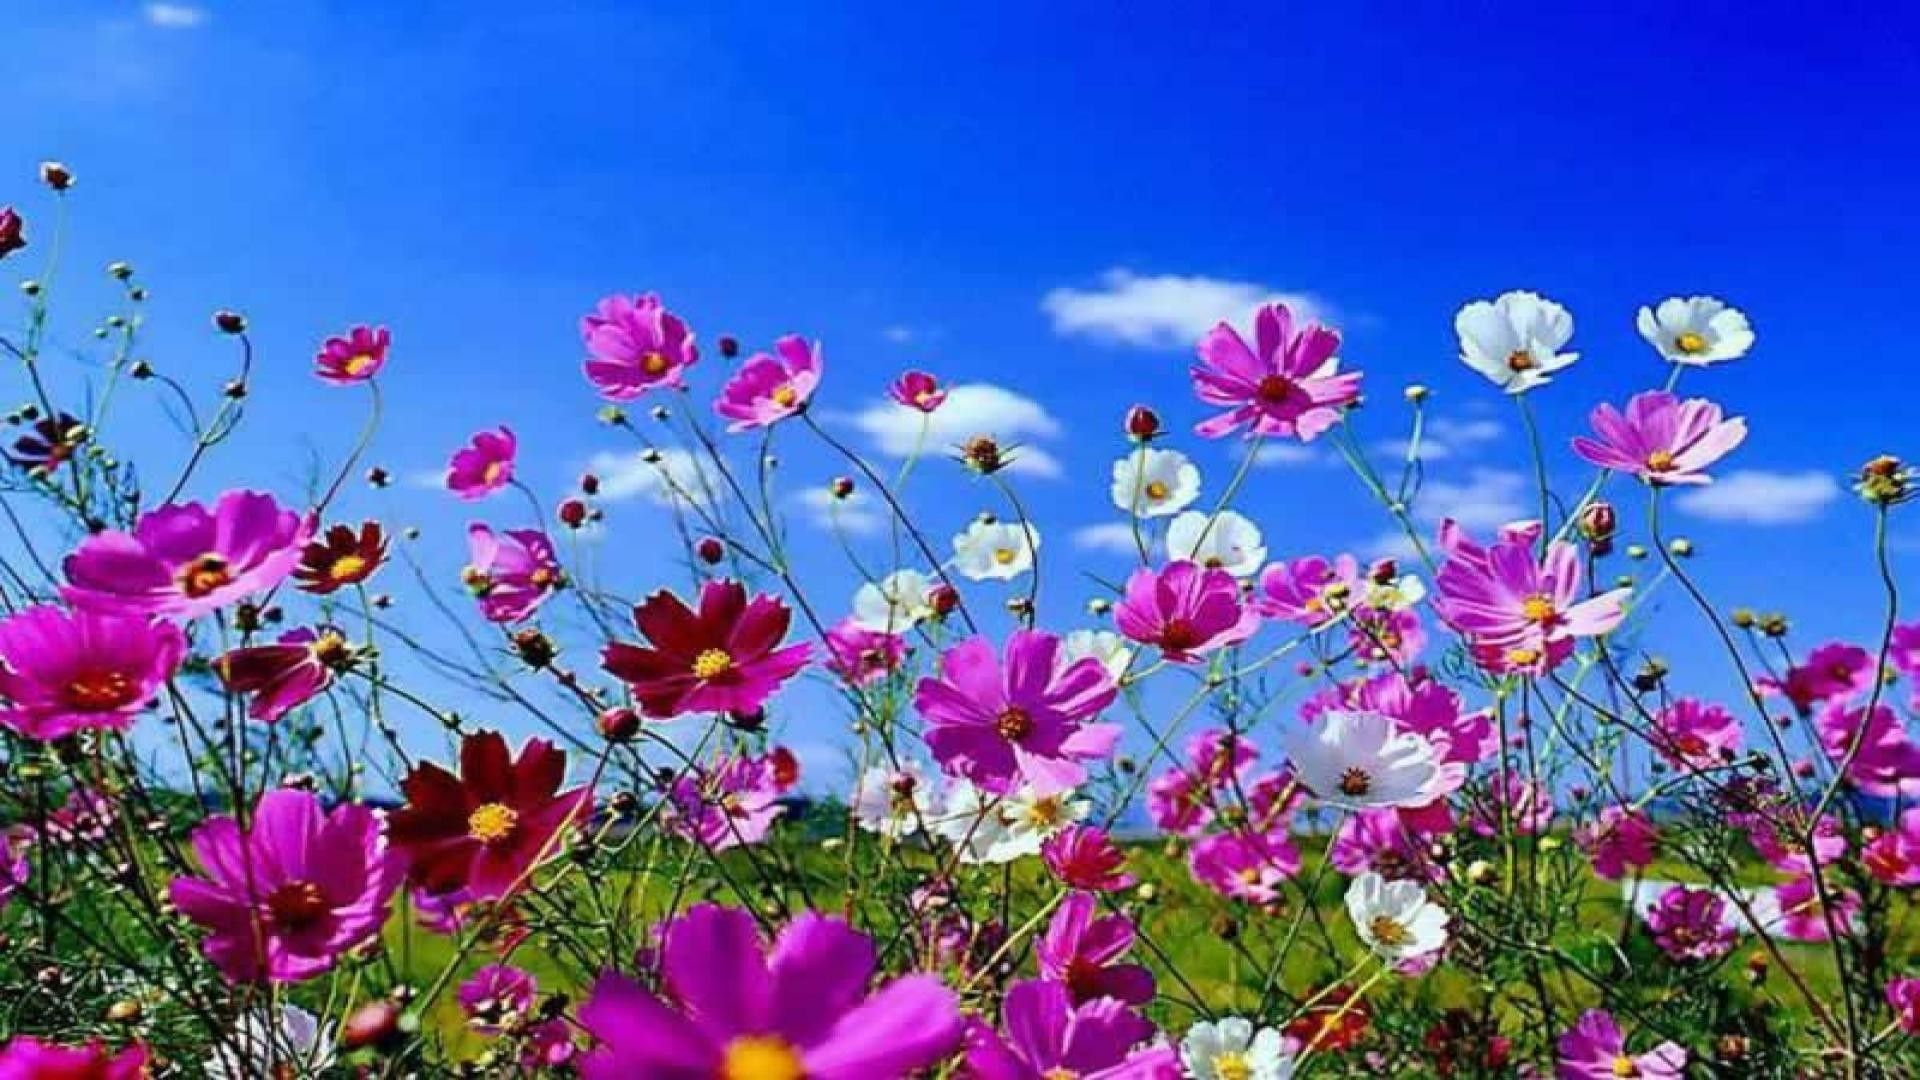 Aesthetic Spring Flowers Wallpapers Hd Background Images Photos Pictures Yl Computing